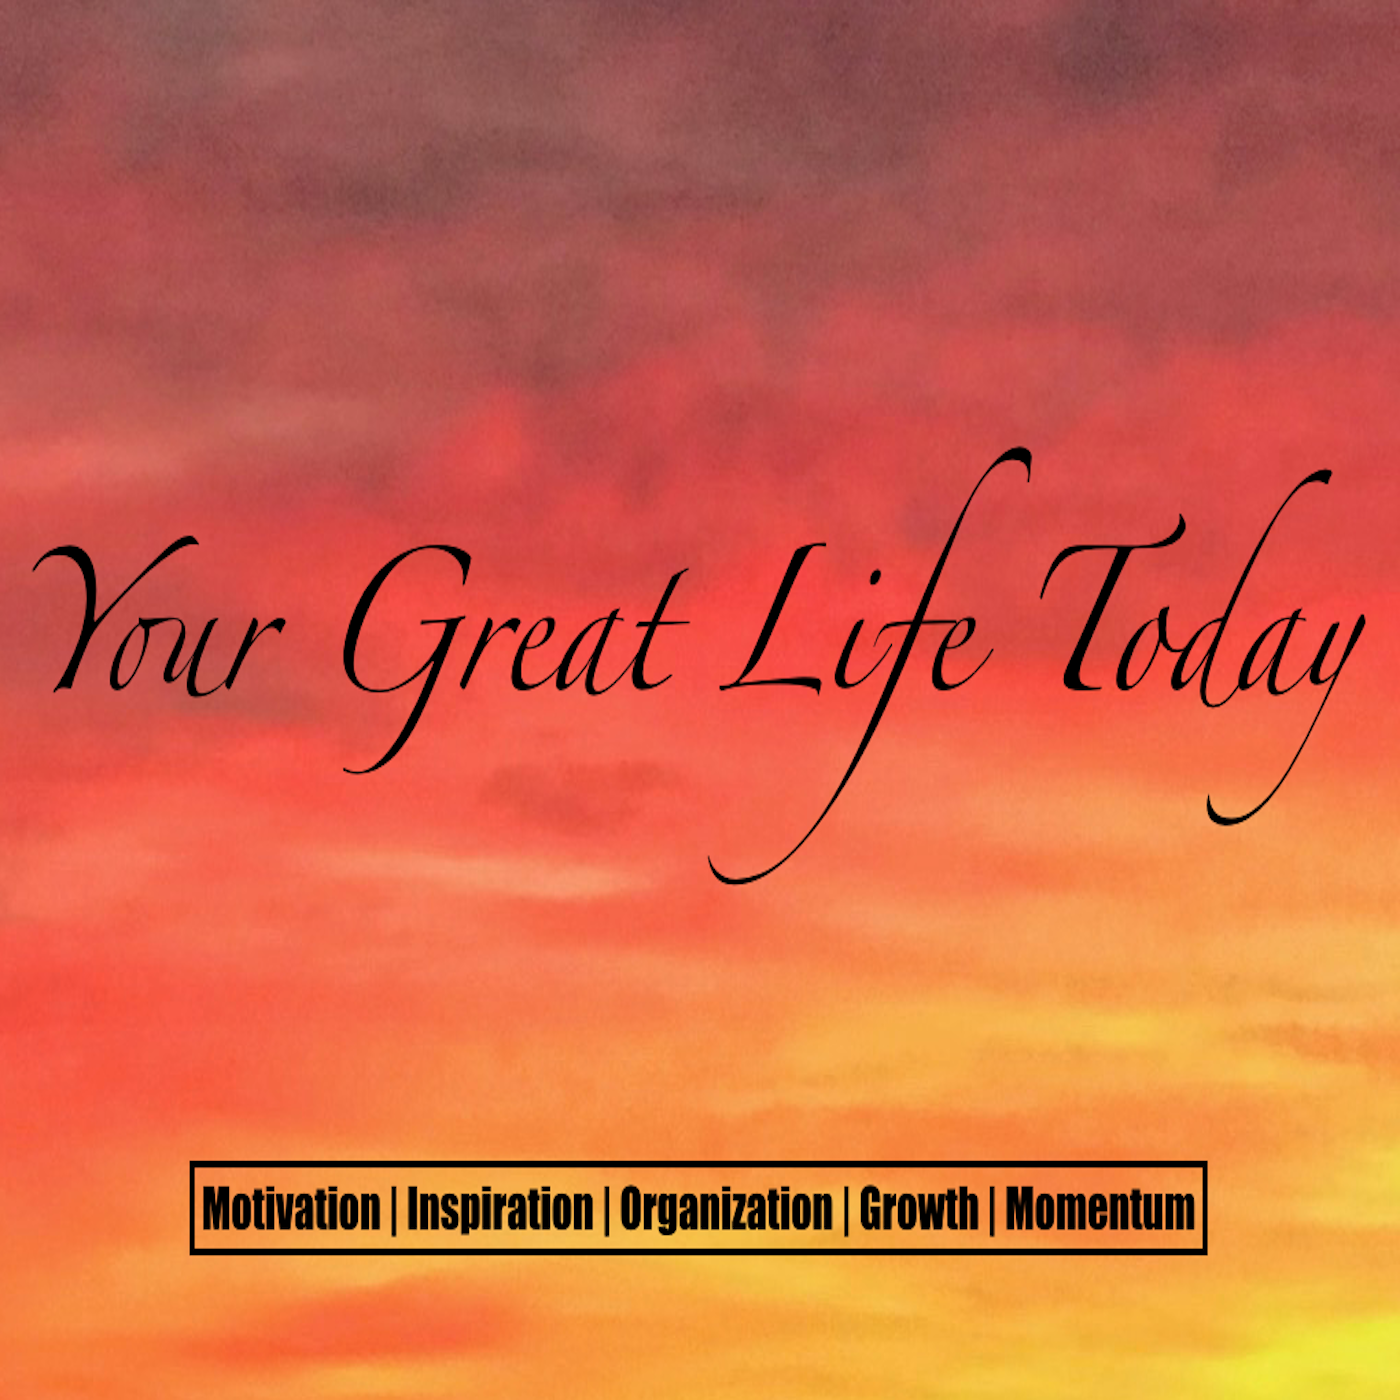 Your Great Life Today